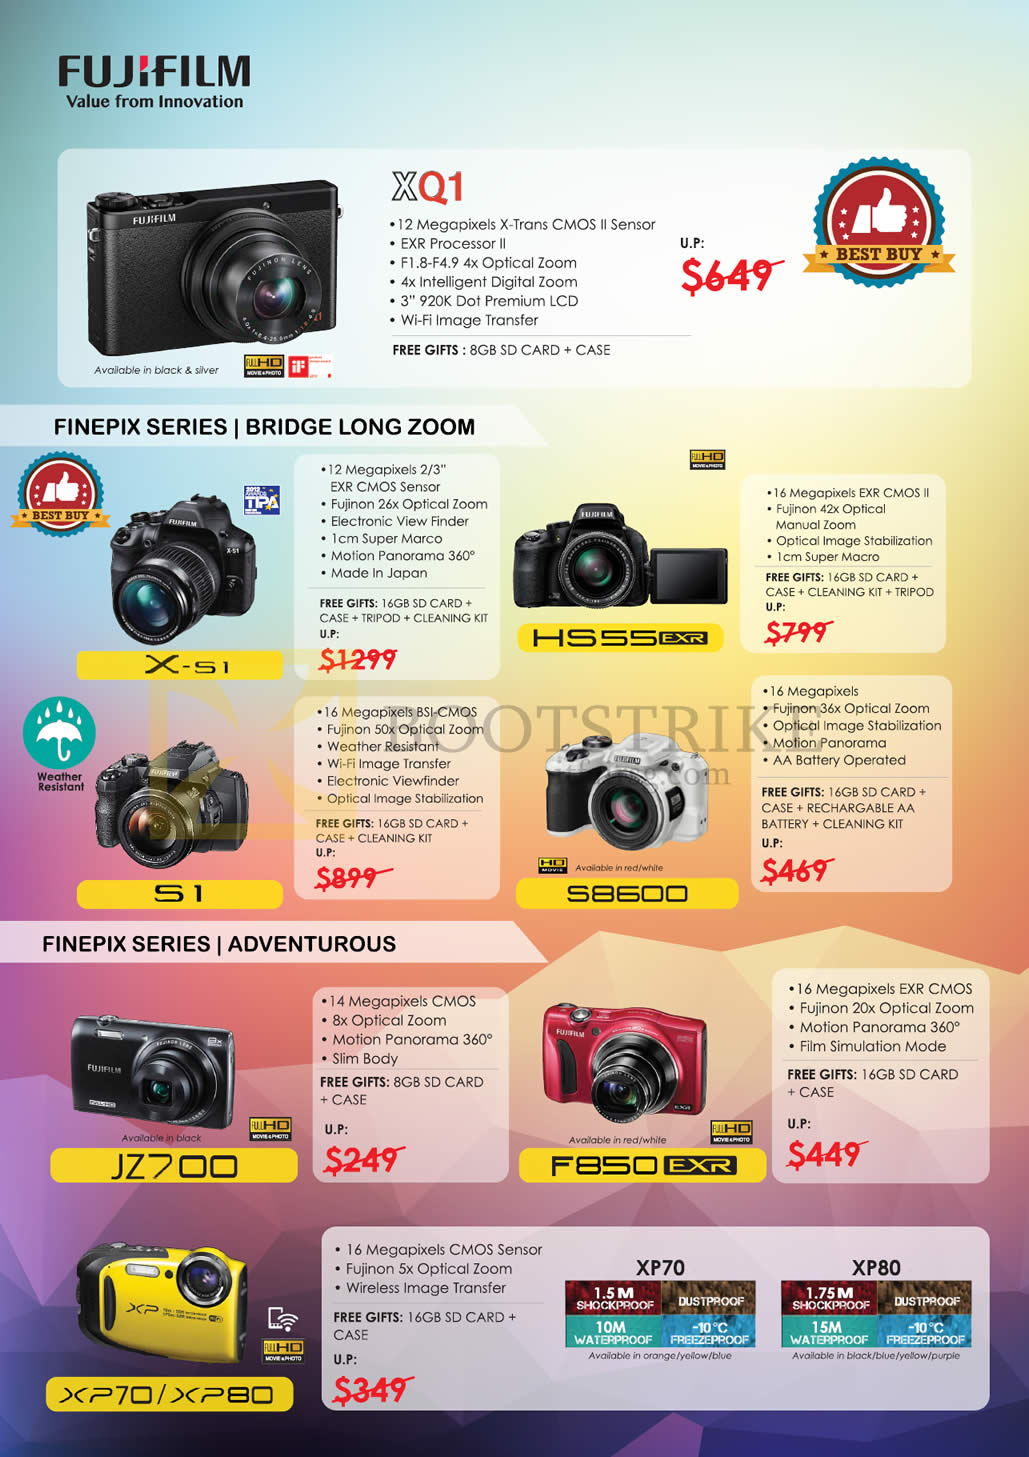 Past Deals Camera Prices In Singapore Deal Town Fujifilm X T2 Body Black Pwp Xf 23mm F 14 Digital Cameras No Xq1 51 S1 Hs55 S8600 Jz700 F850 Xp70 Xp80